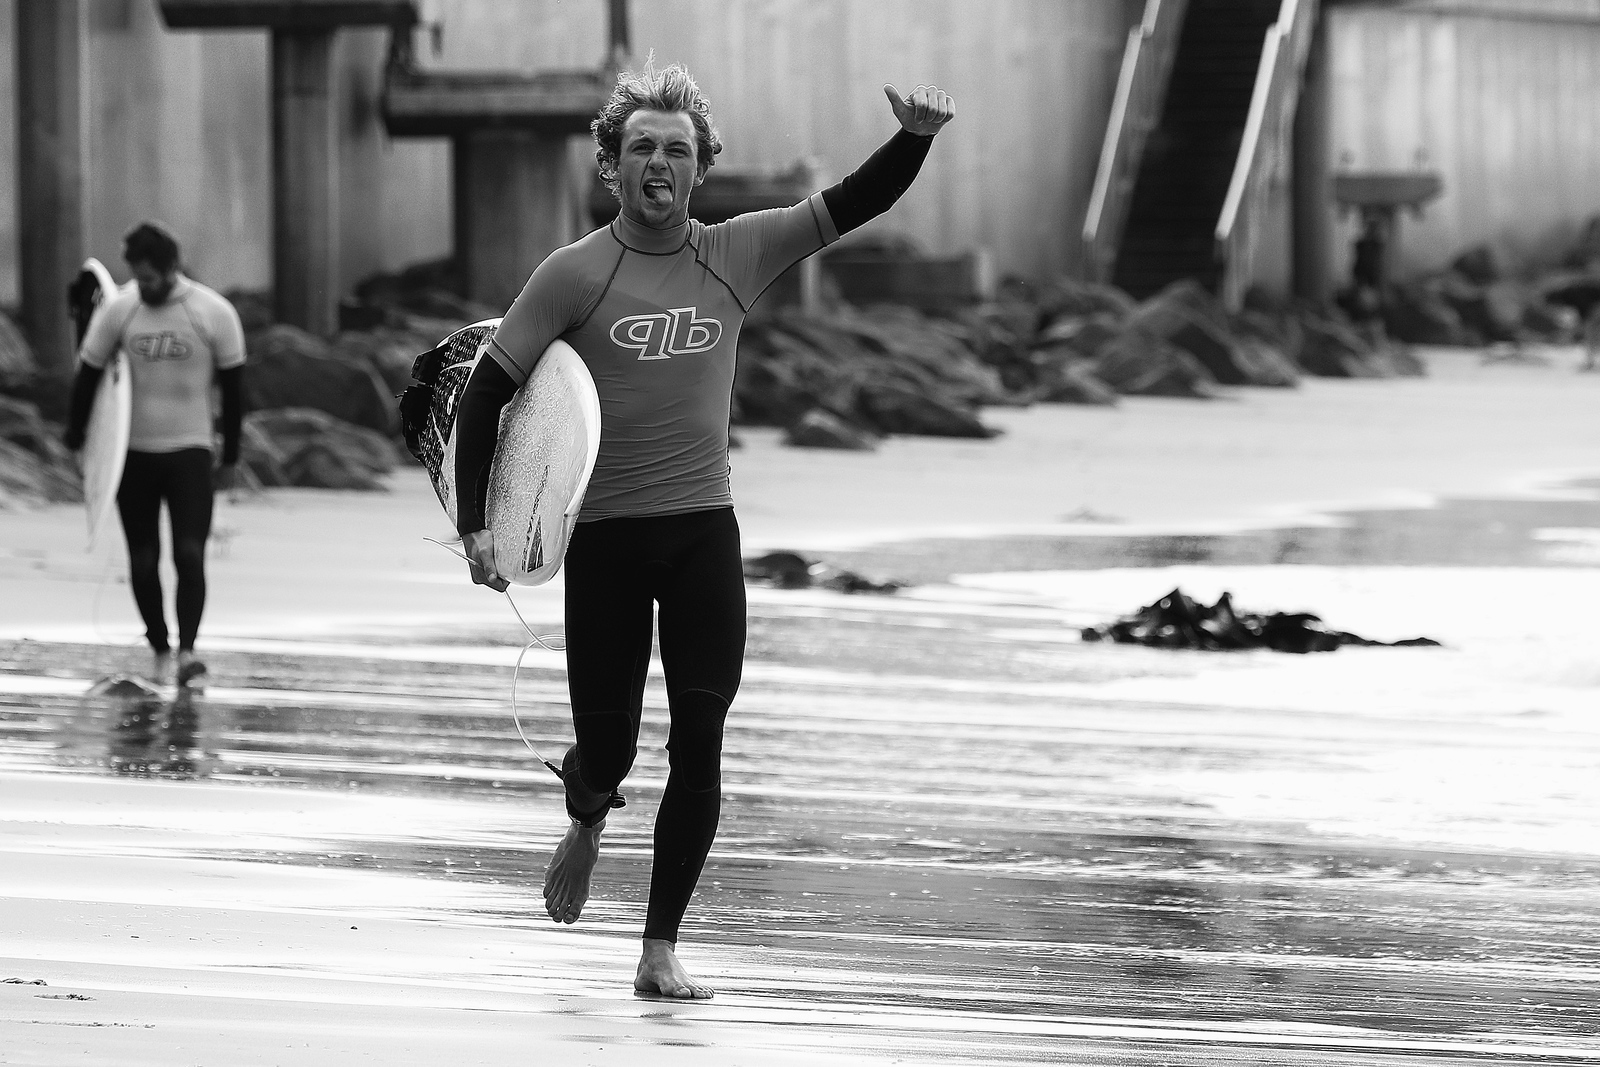 South Island Surfing Championships (31.03.18)